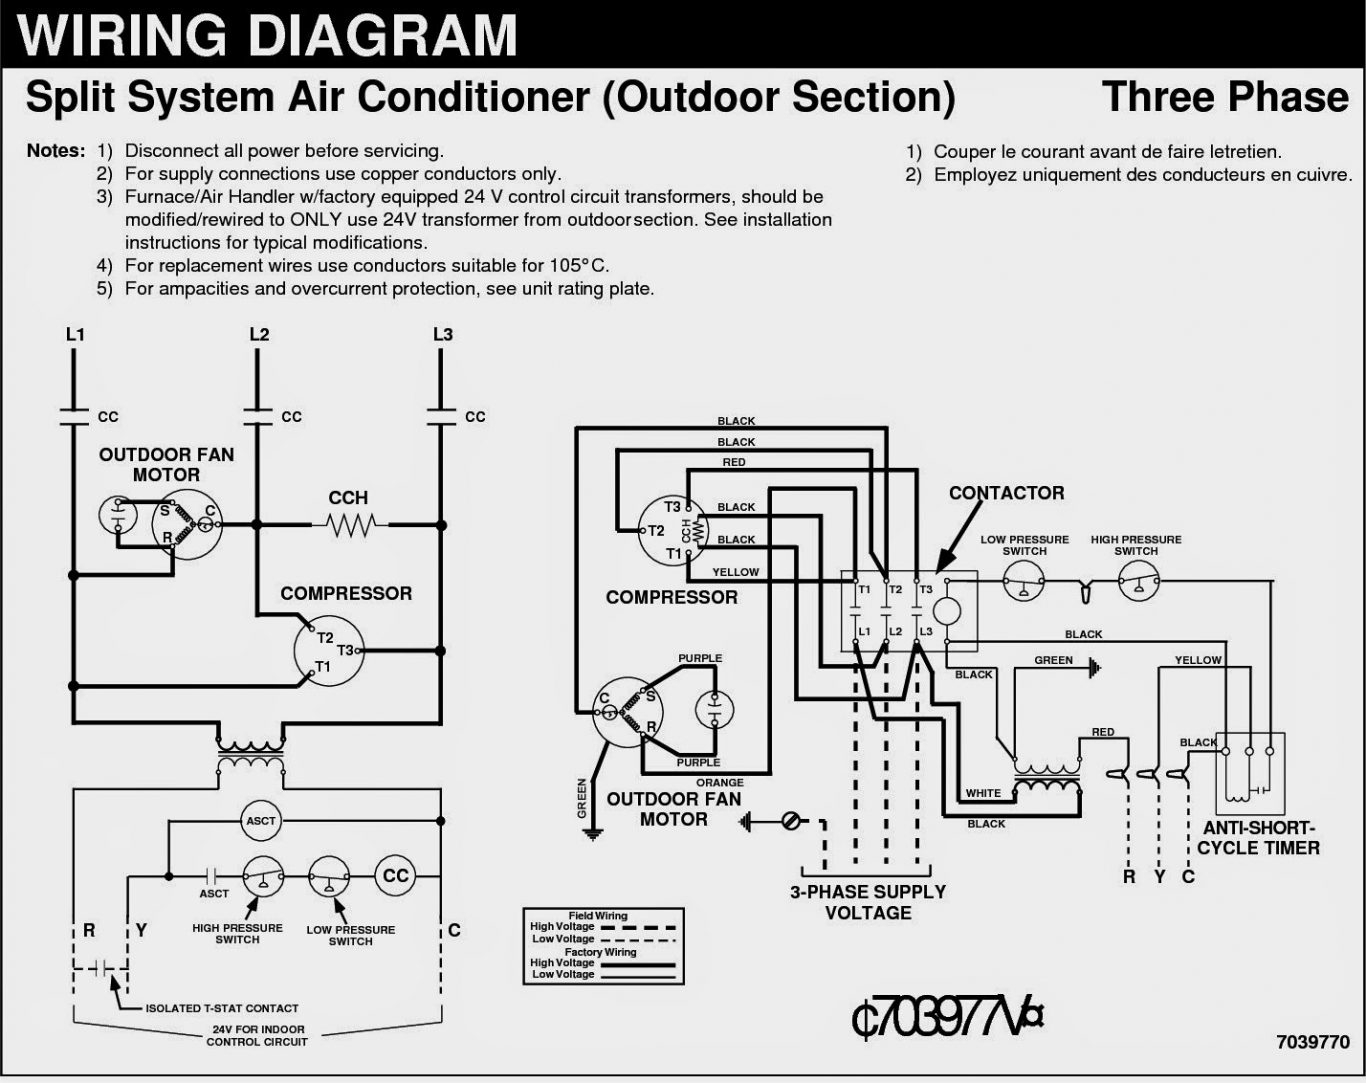 vita spa l200 wiring diagram gallery. Black Bedroom Furniture Sets. Home Design Ideas